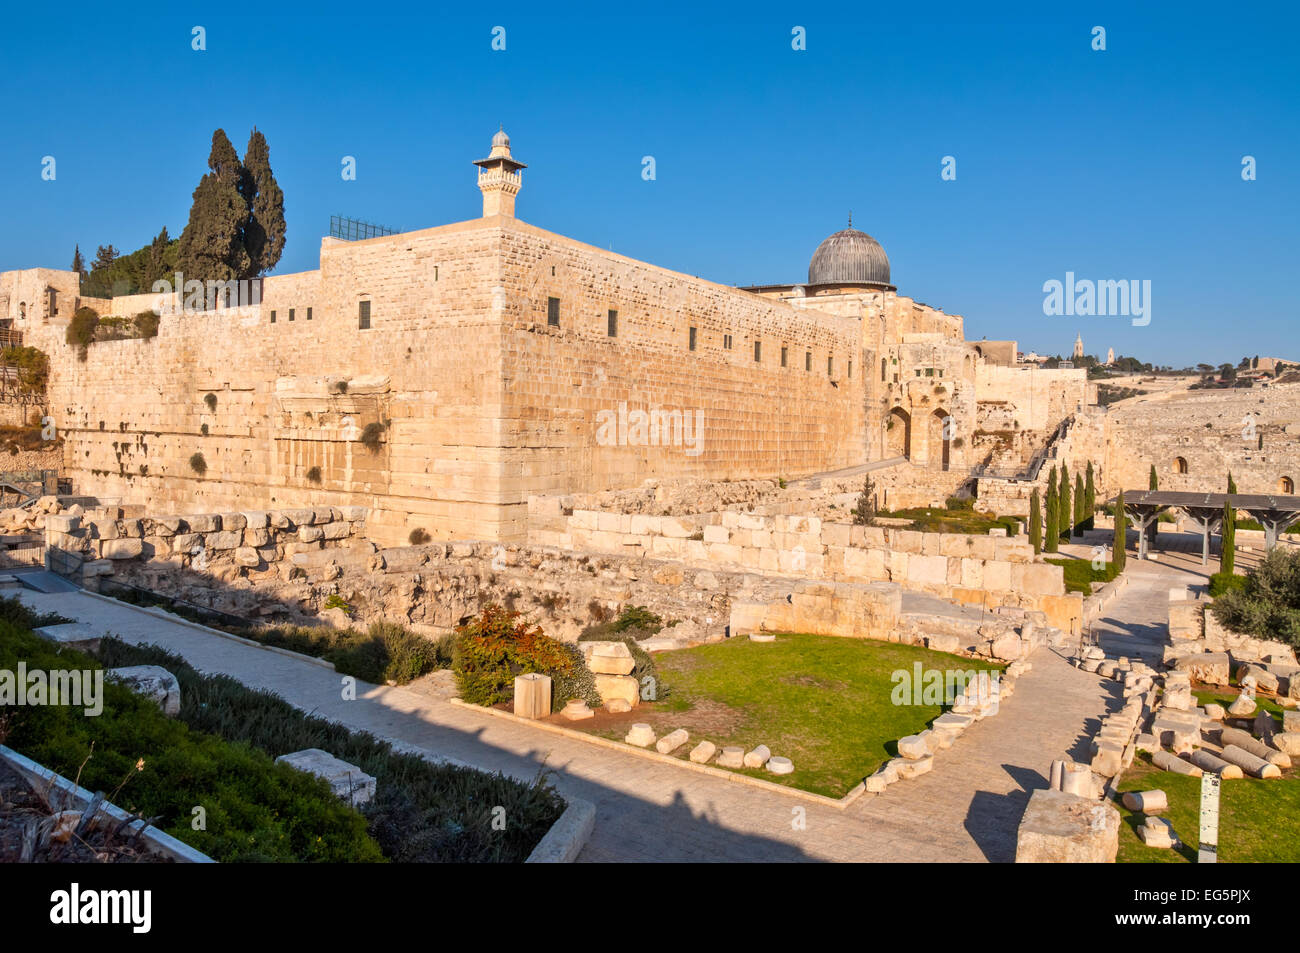 The southwest corner of the temple mount in Jerusalem - Stock Image